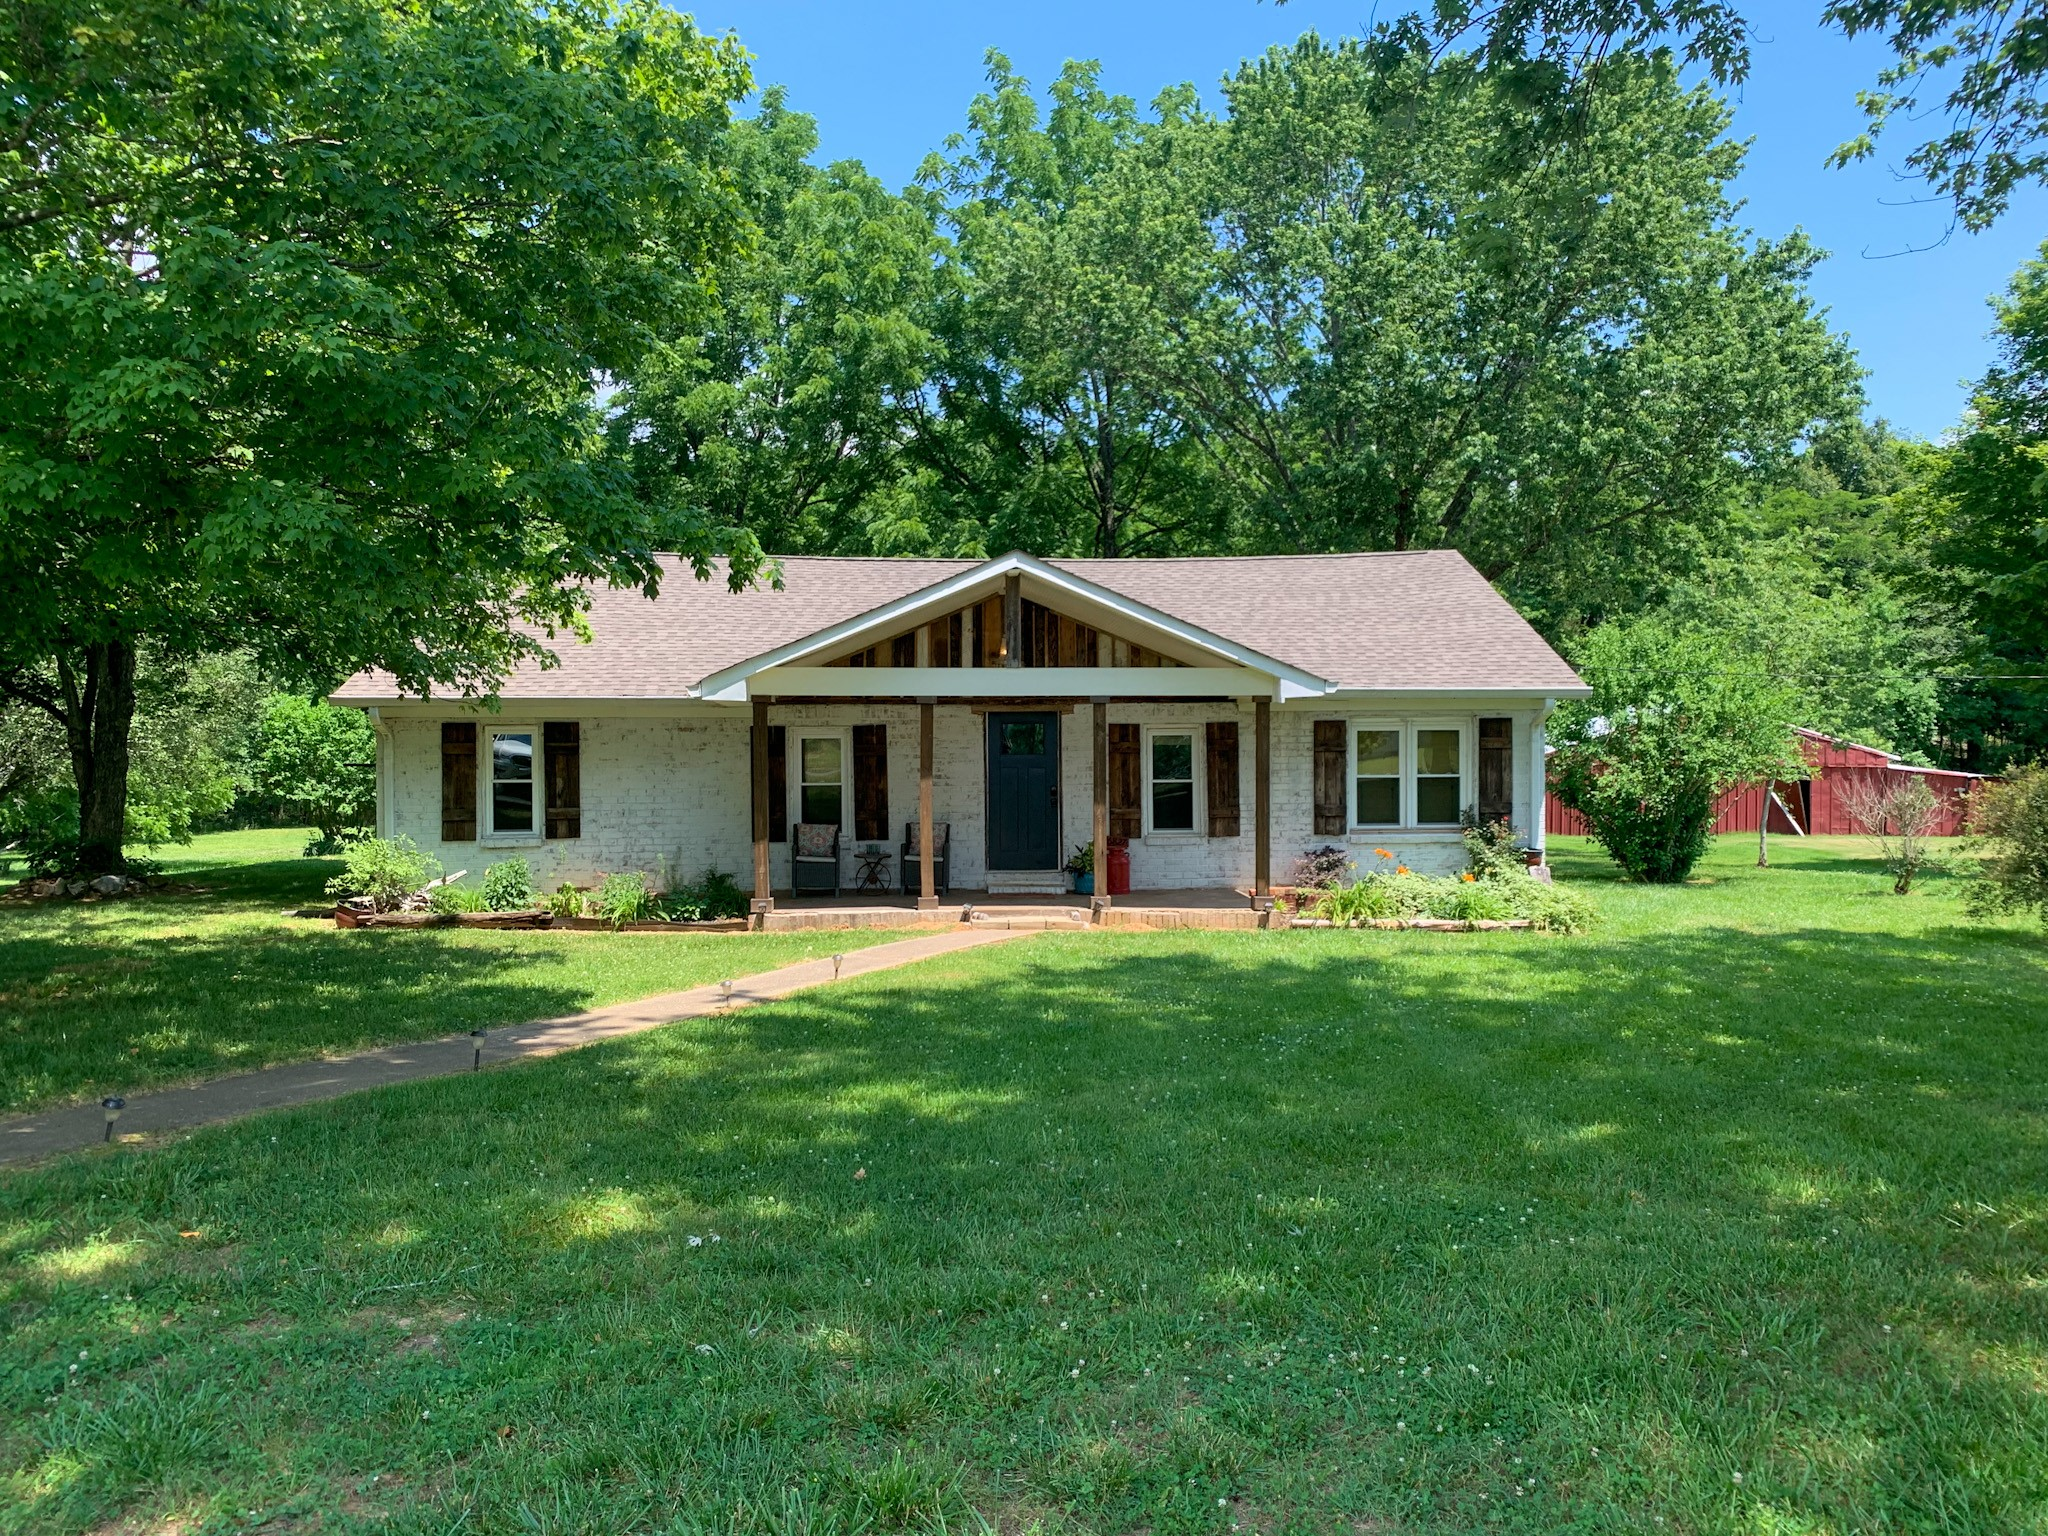 Beautifully updated ranch home on 3acres. This 3br 2 bath home has been fully renovated and offers gorgeous hardwood floors, open floor plan, & stylish kitchen & baths. Enjoy your morning coffee on your back deck, or have a party - there is room for everyone. Also includes barn/outdoor buildings for your favorite animals and equipment.